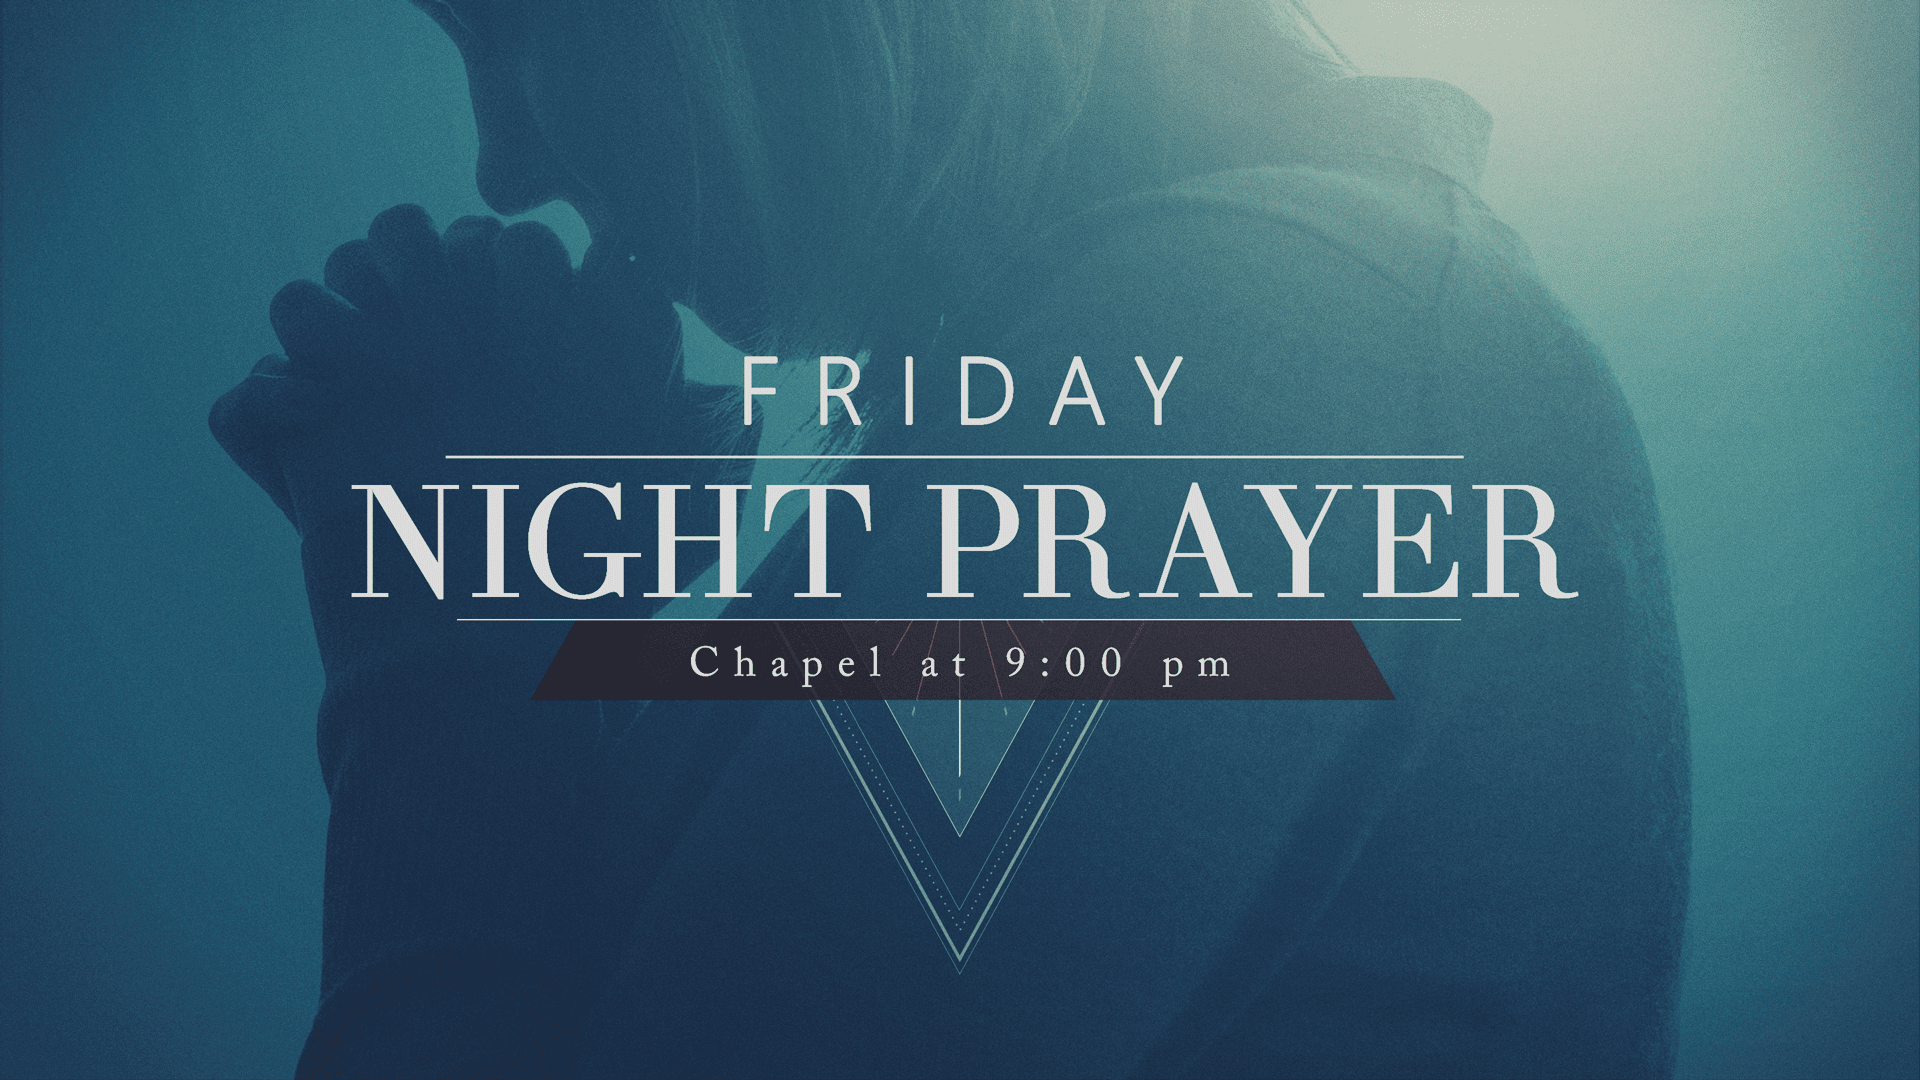 Friday Night Prayer